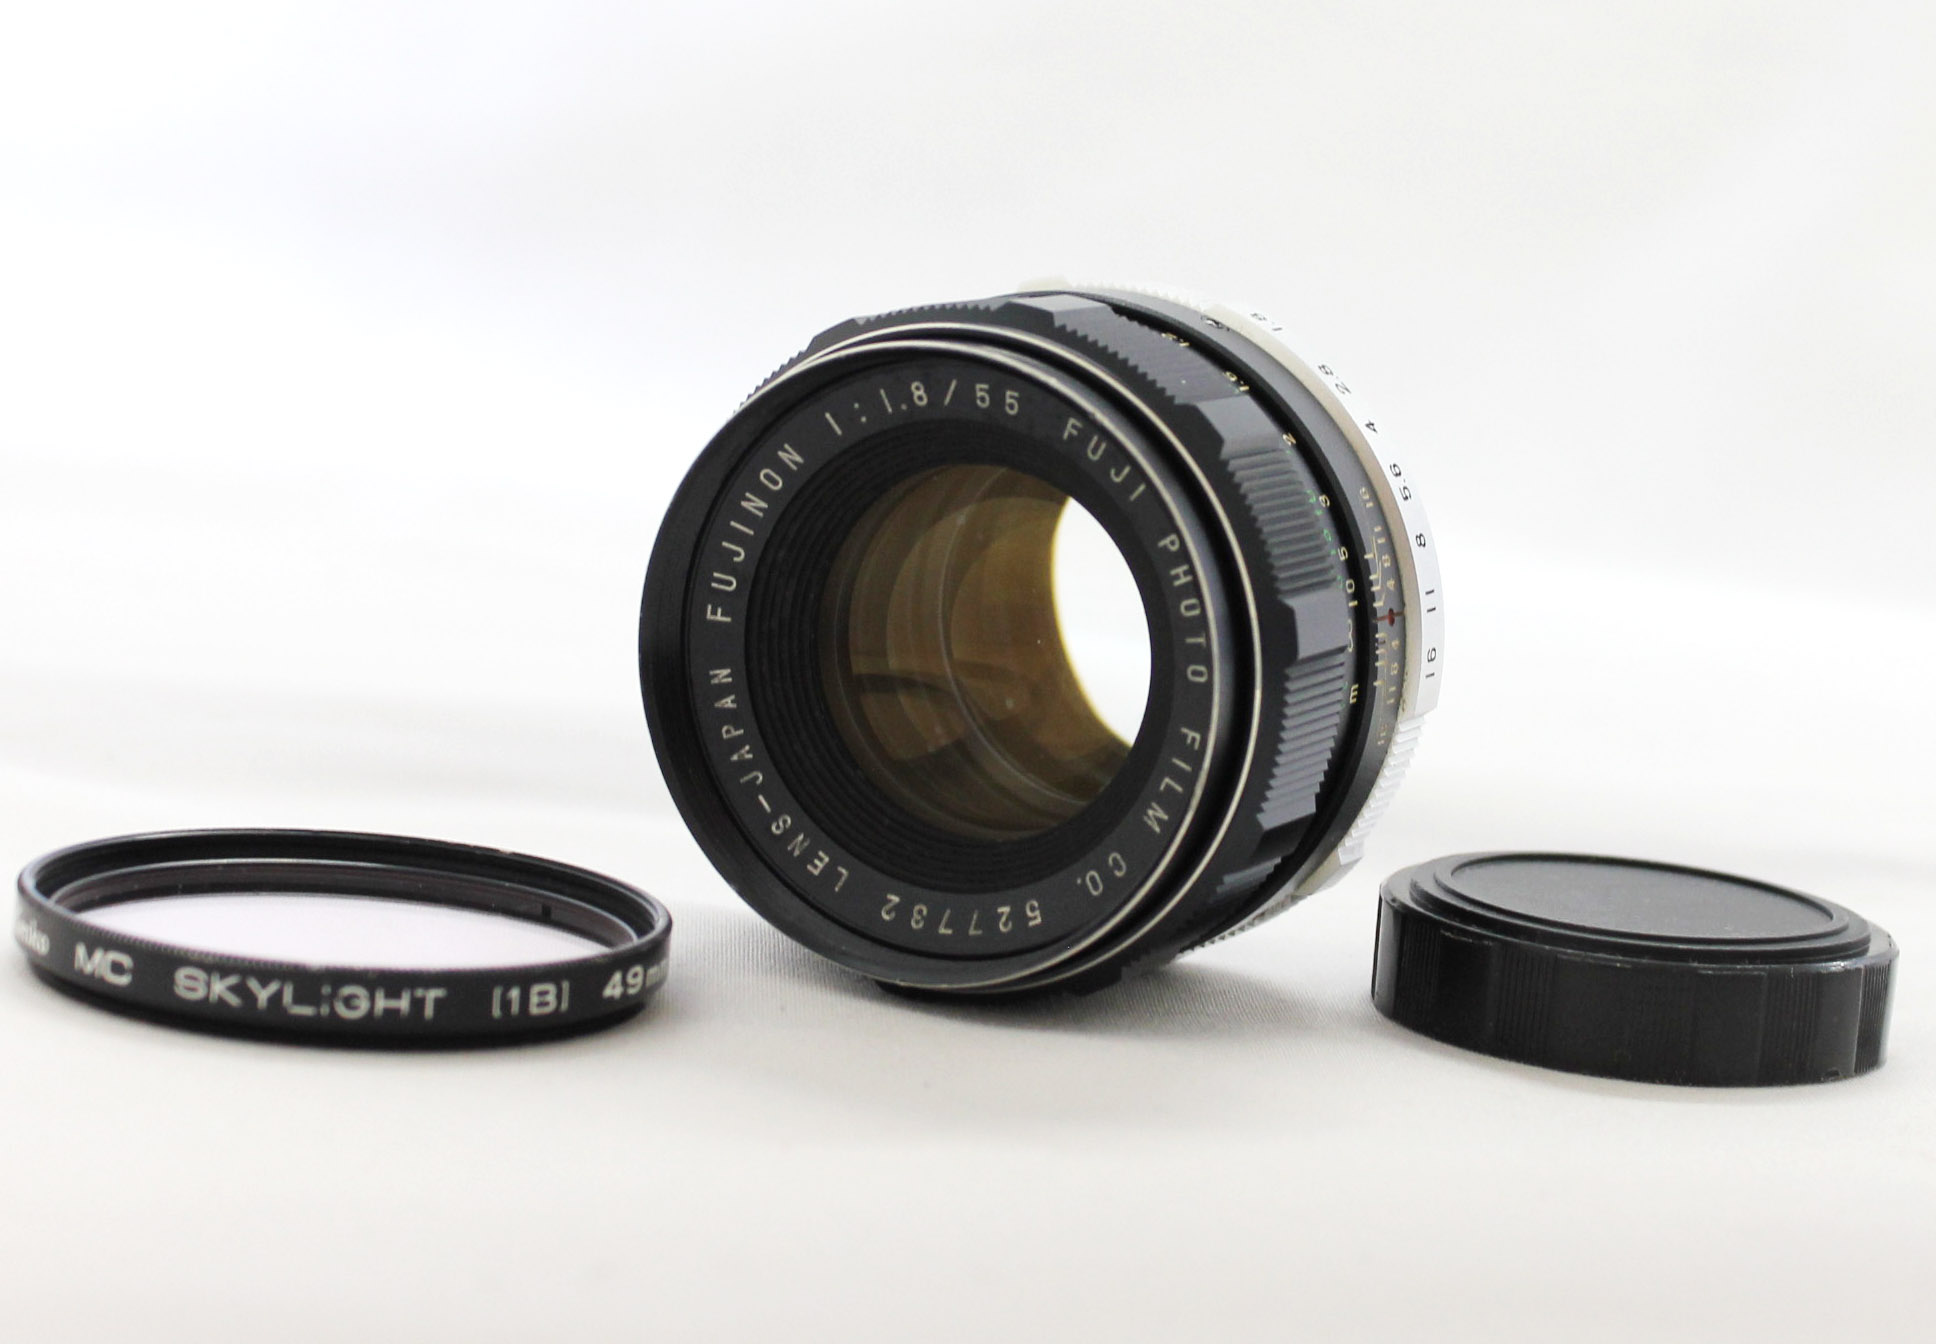 Japan Used Camera Shop | [Excellent++++] Fuji Fujinon 55mm F/1.8 M42 Mount MF Prime Lens from Japan